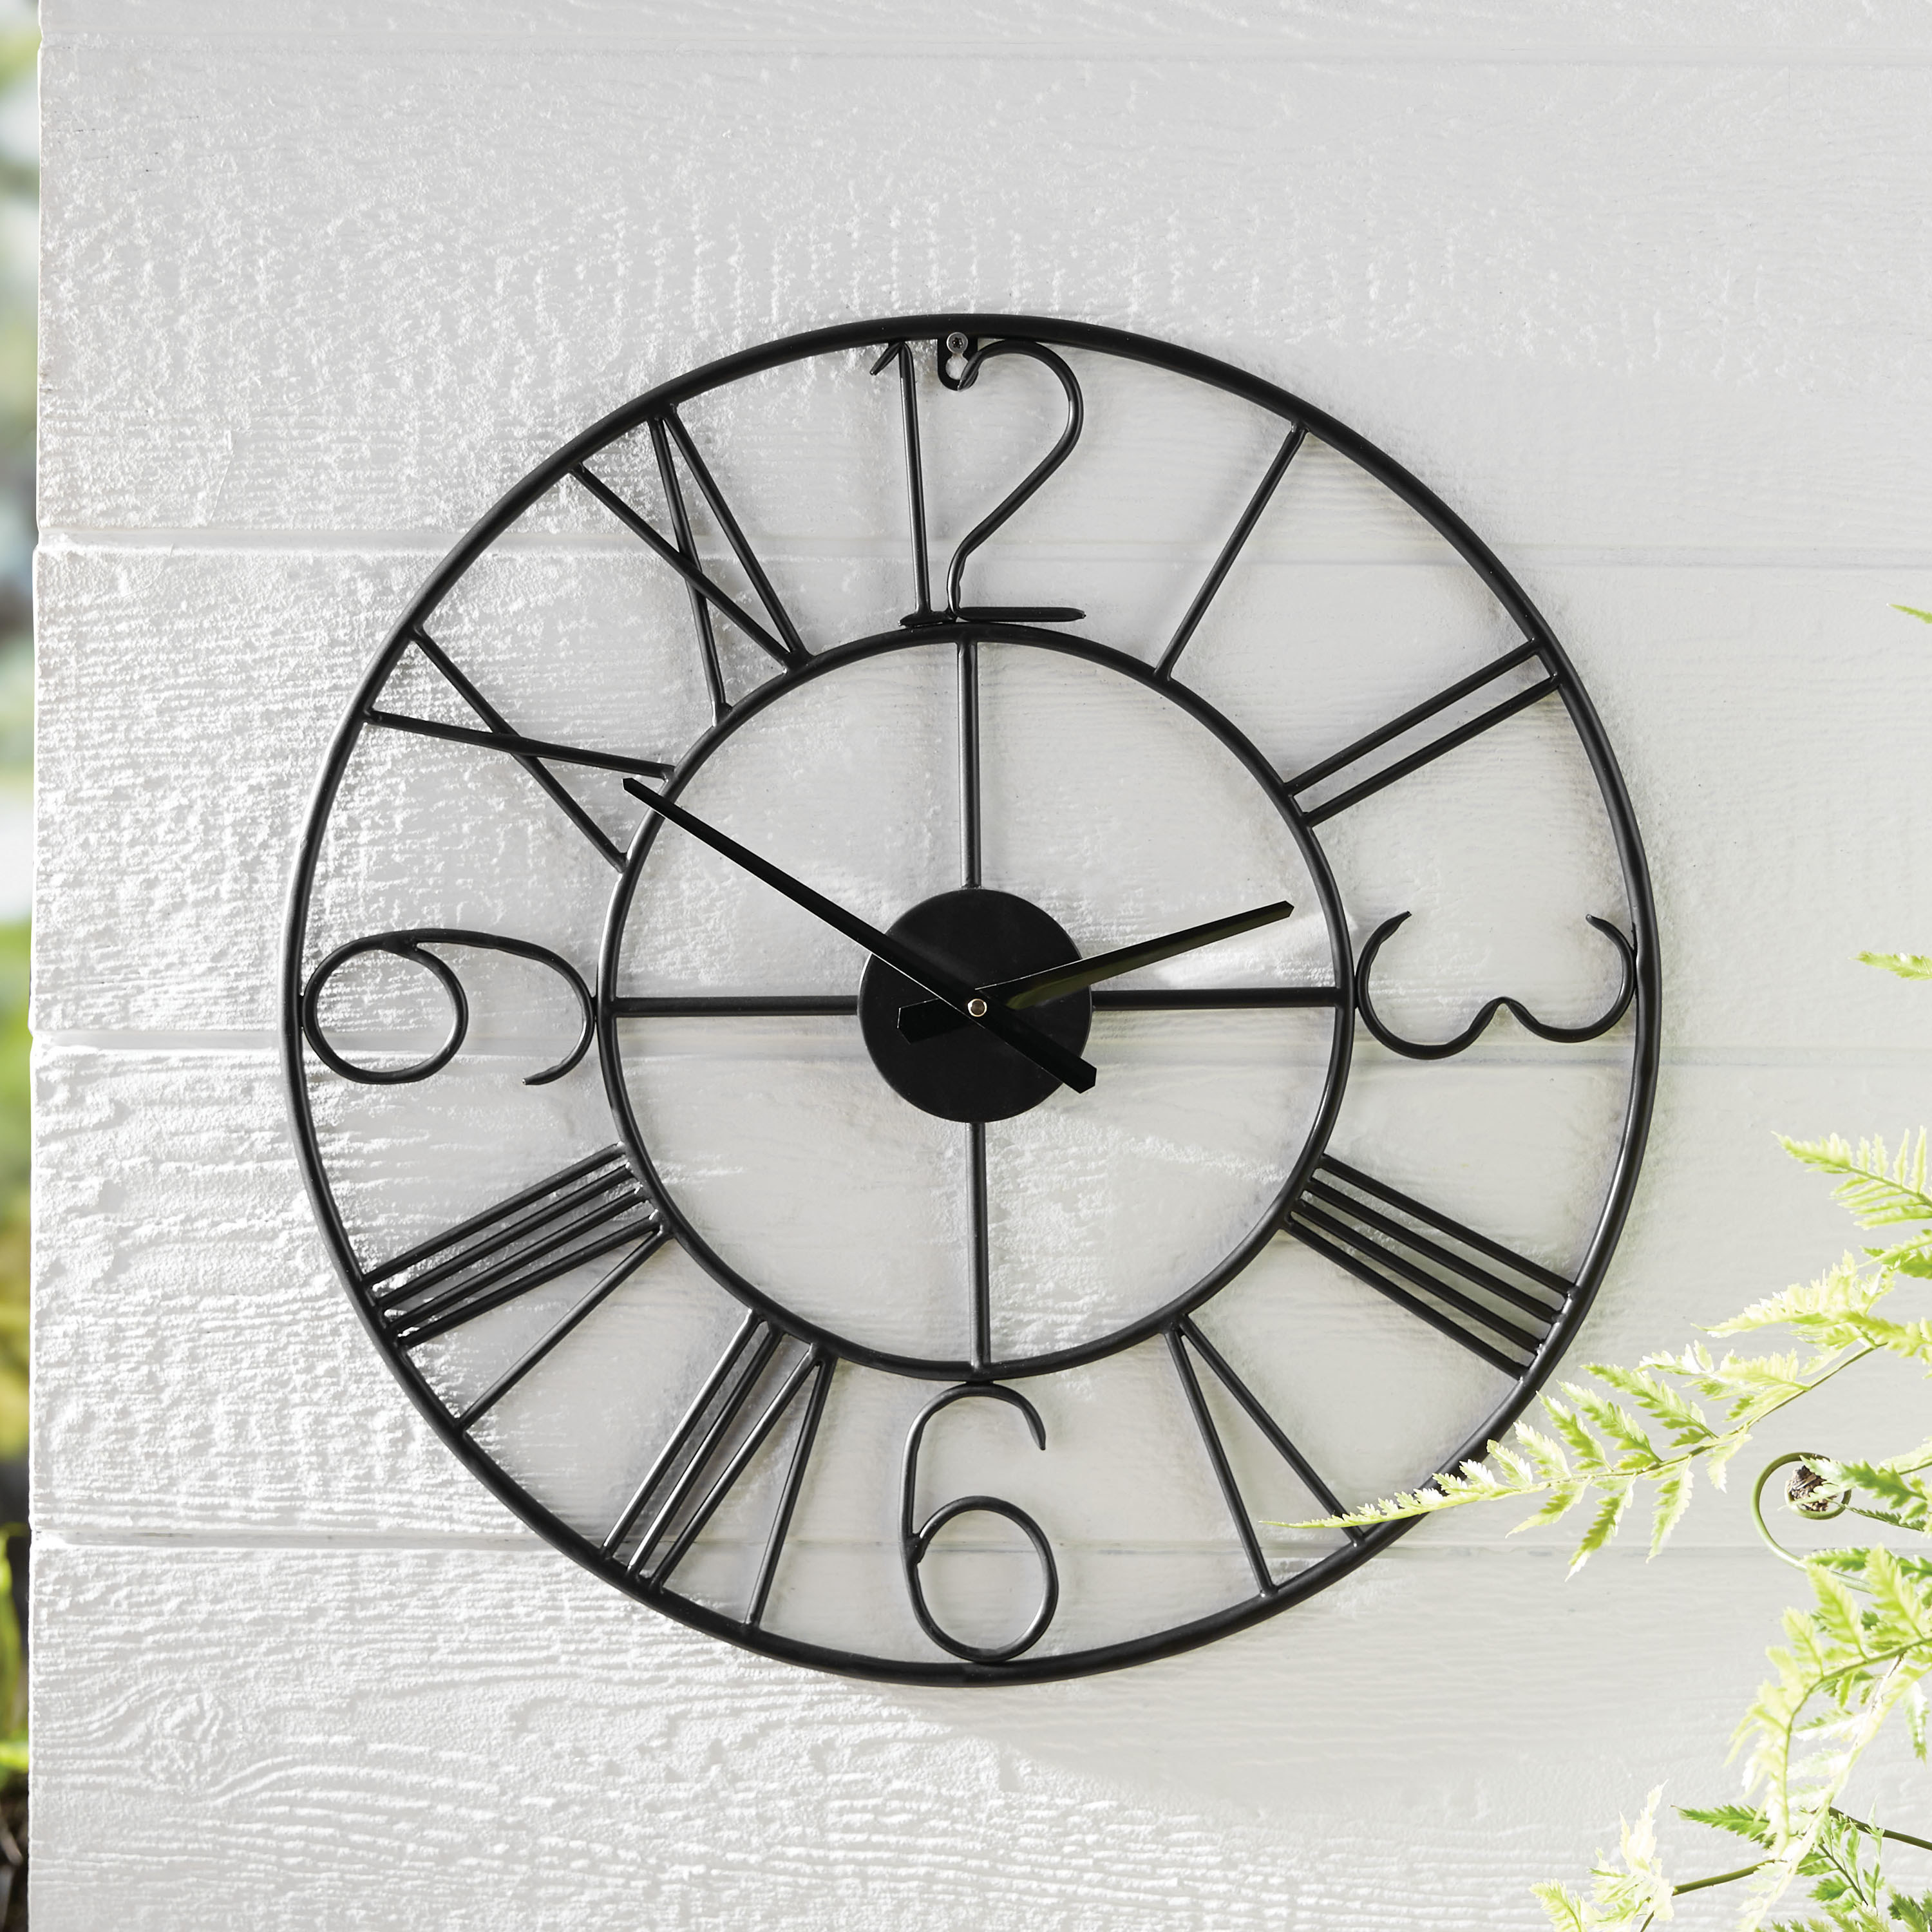 black metal clock with roman numerals and numbers for 3, 6, 9, and 12